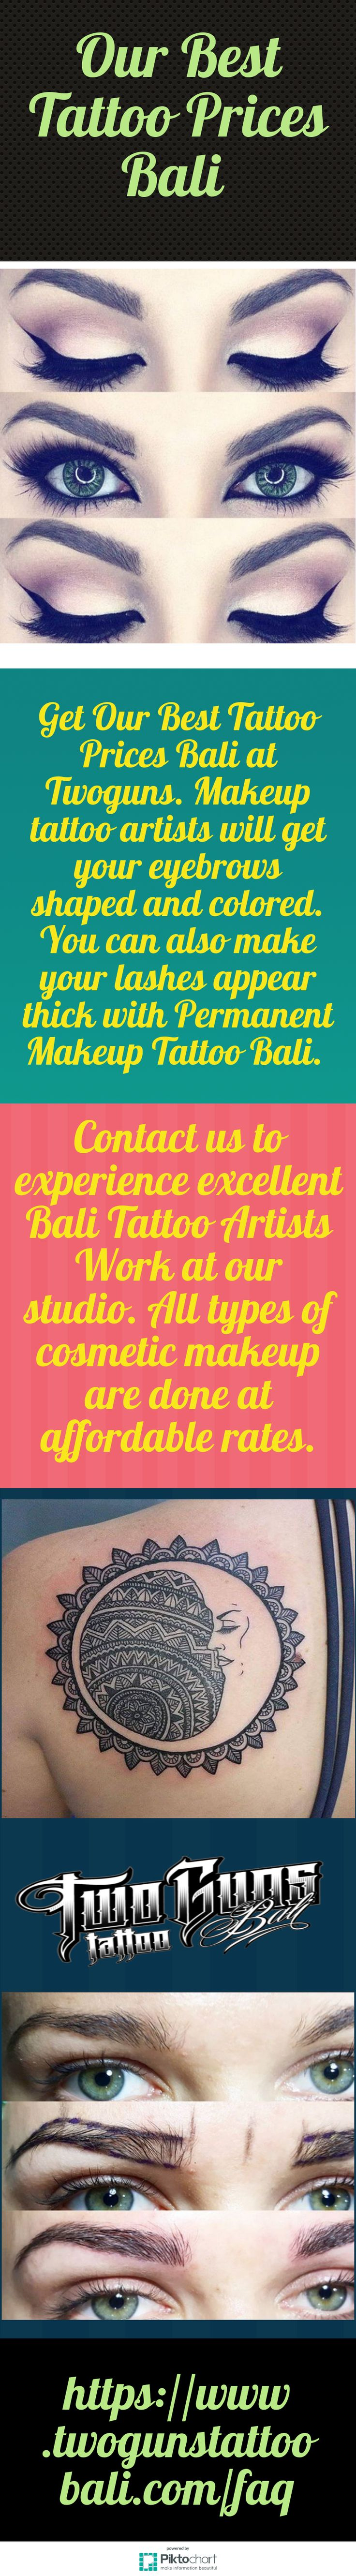 Get Our Best Tattoo Prices Bali at Twoguns. Makeup tattoo artists will get your eyebrows shaped and colored. You can also make your lashes appear thick with Permanent Makeup Tattoo Bali. For detail, visit link: https://www.twogunstattoobali.com/faq